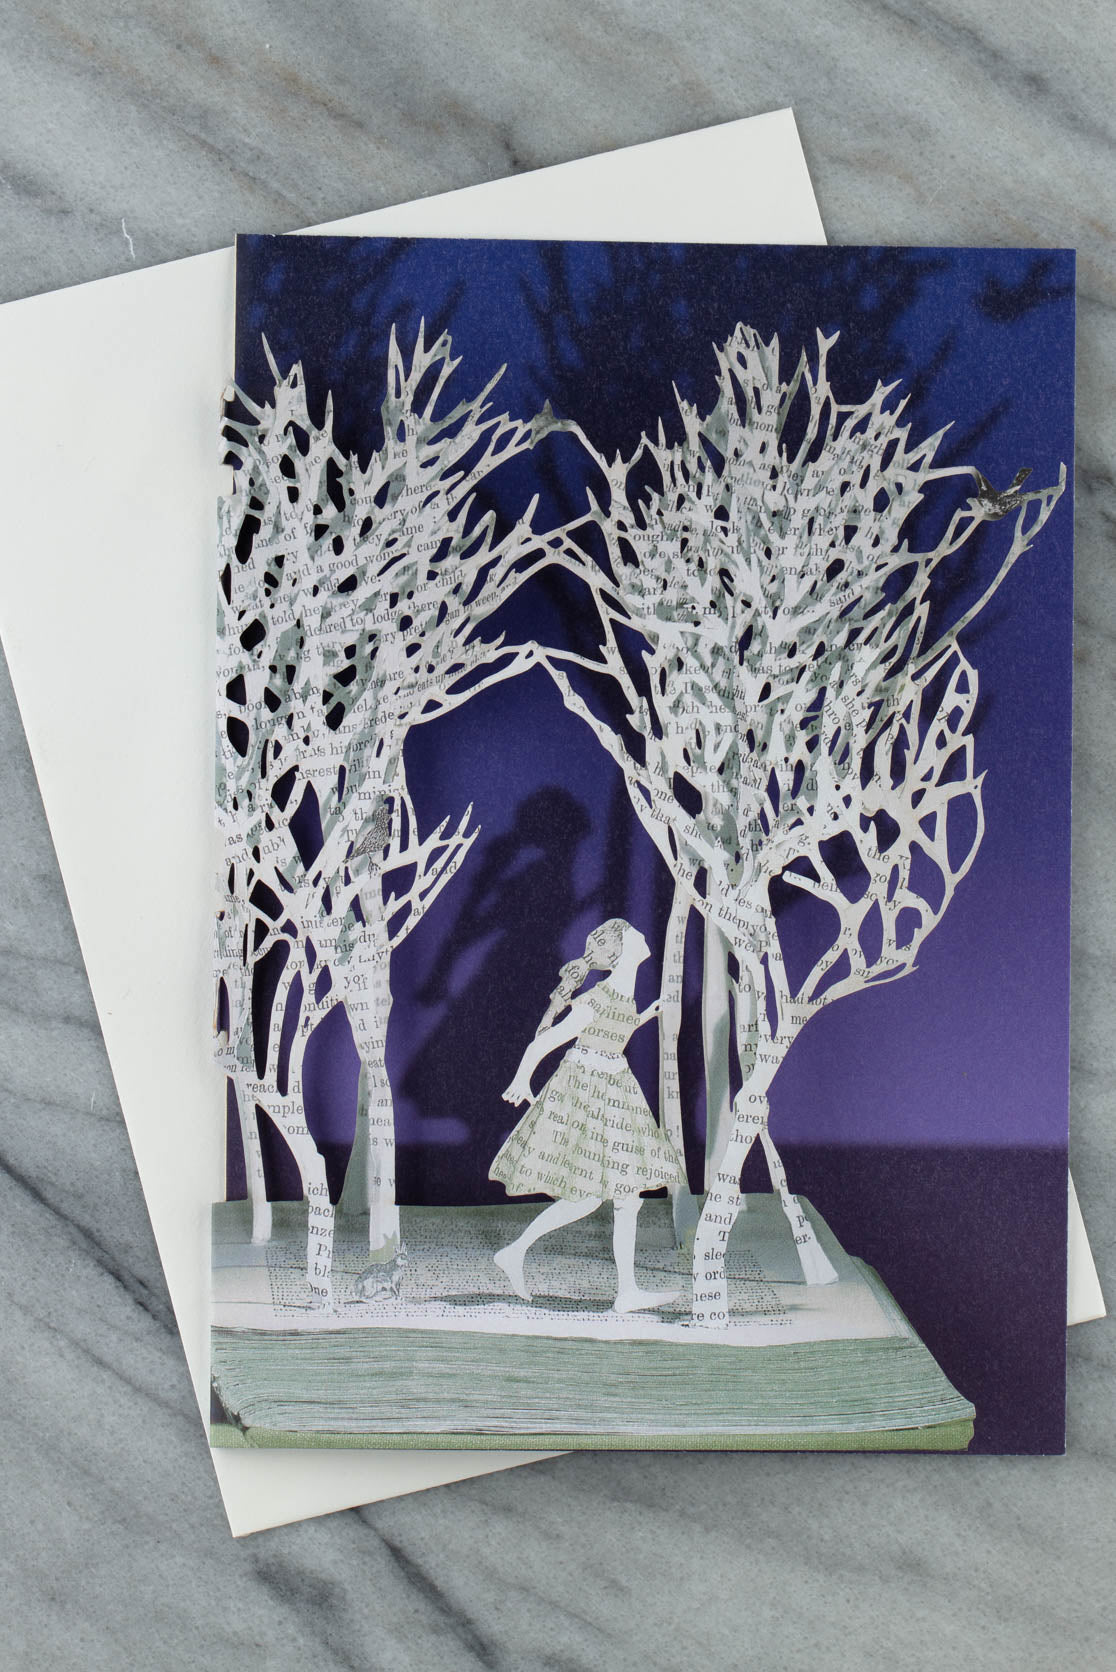 enchanted forest laser-cut greetings card by su blackwerll for roger la borde